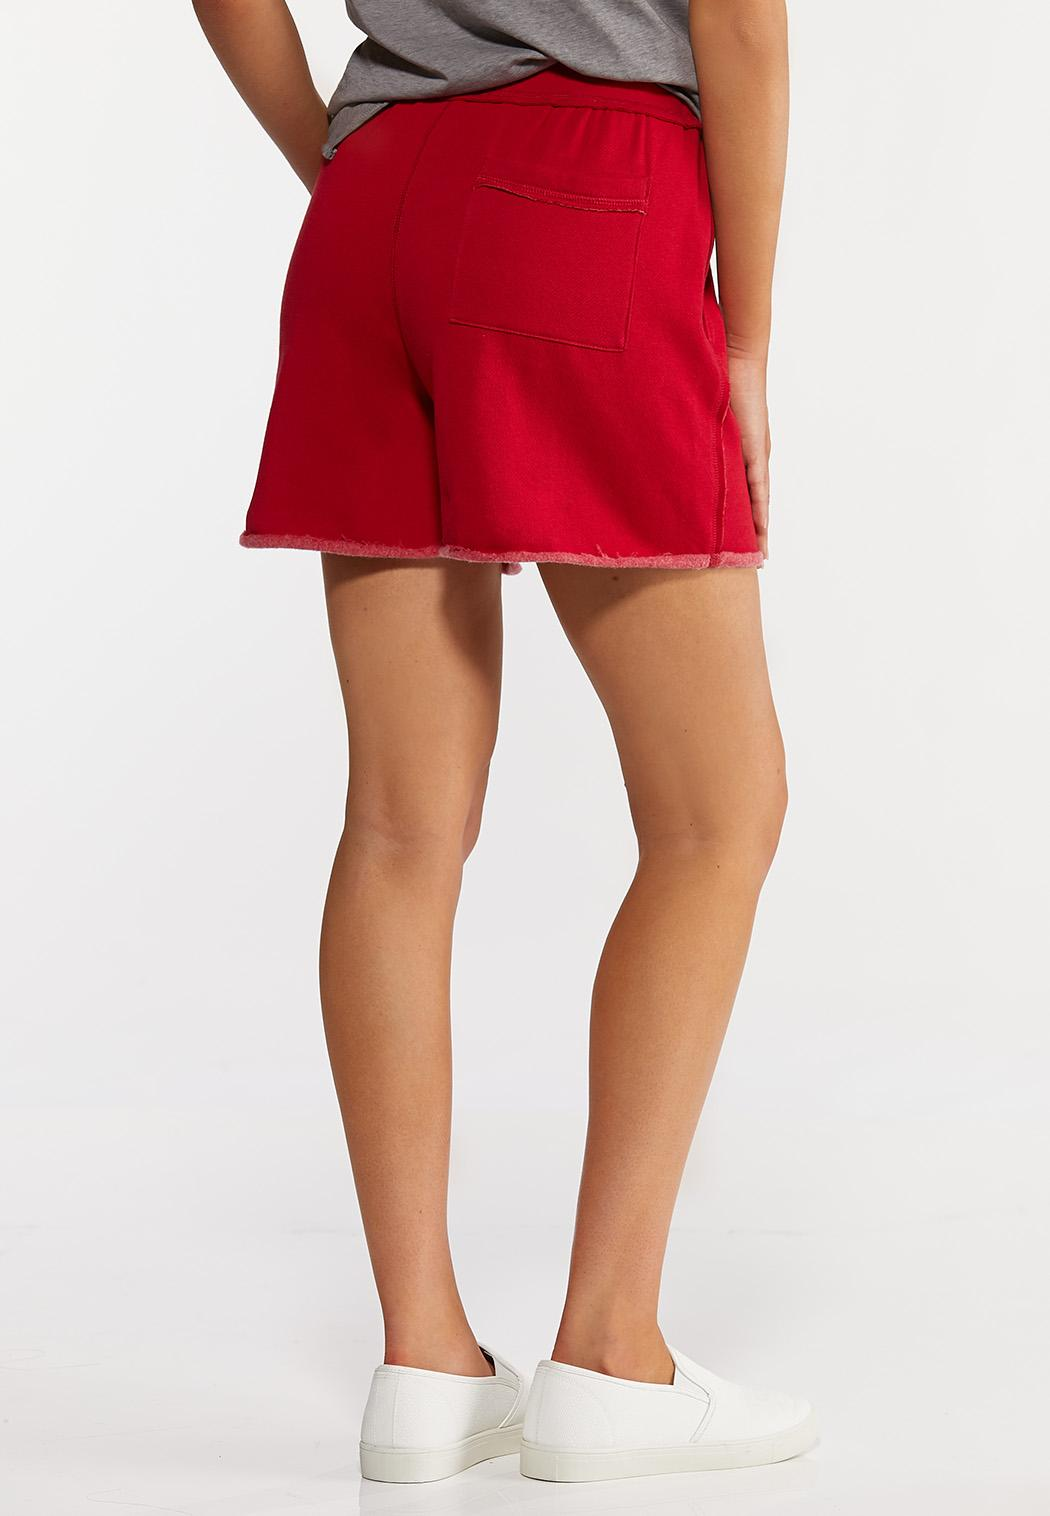 Red Fleece Lined Shorts (Item #44272390)